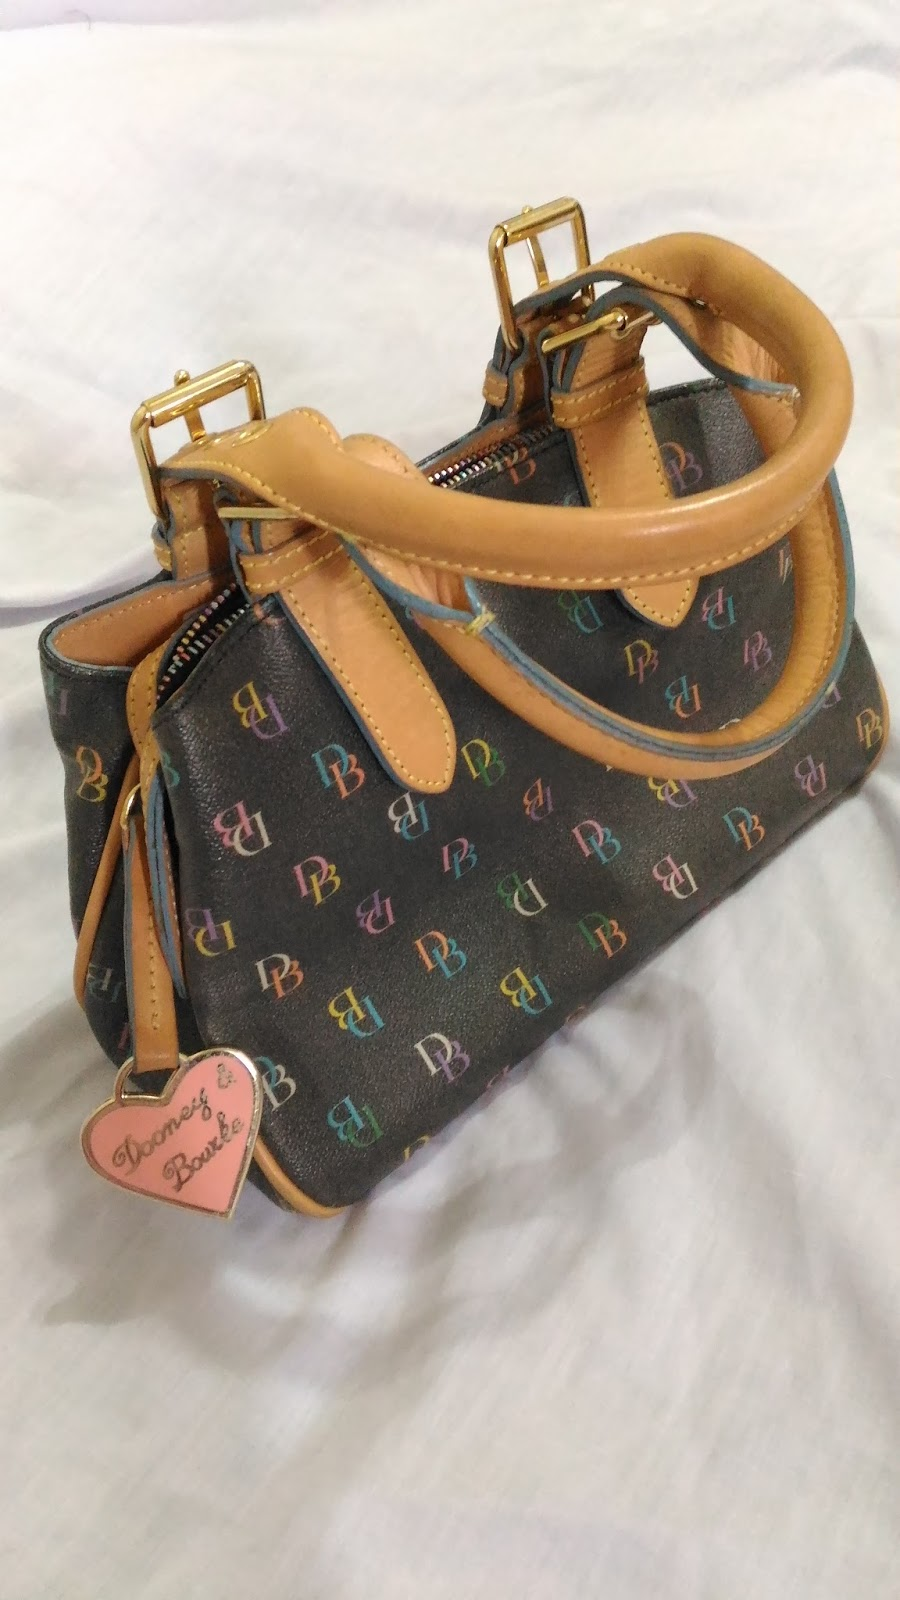 Gift Bag on Review: Dooney & Bourke